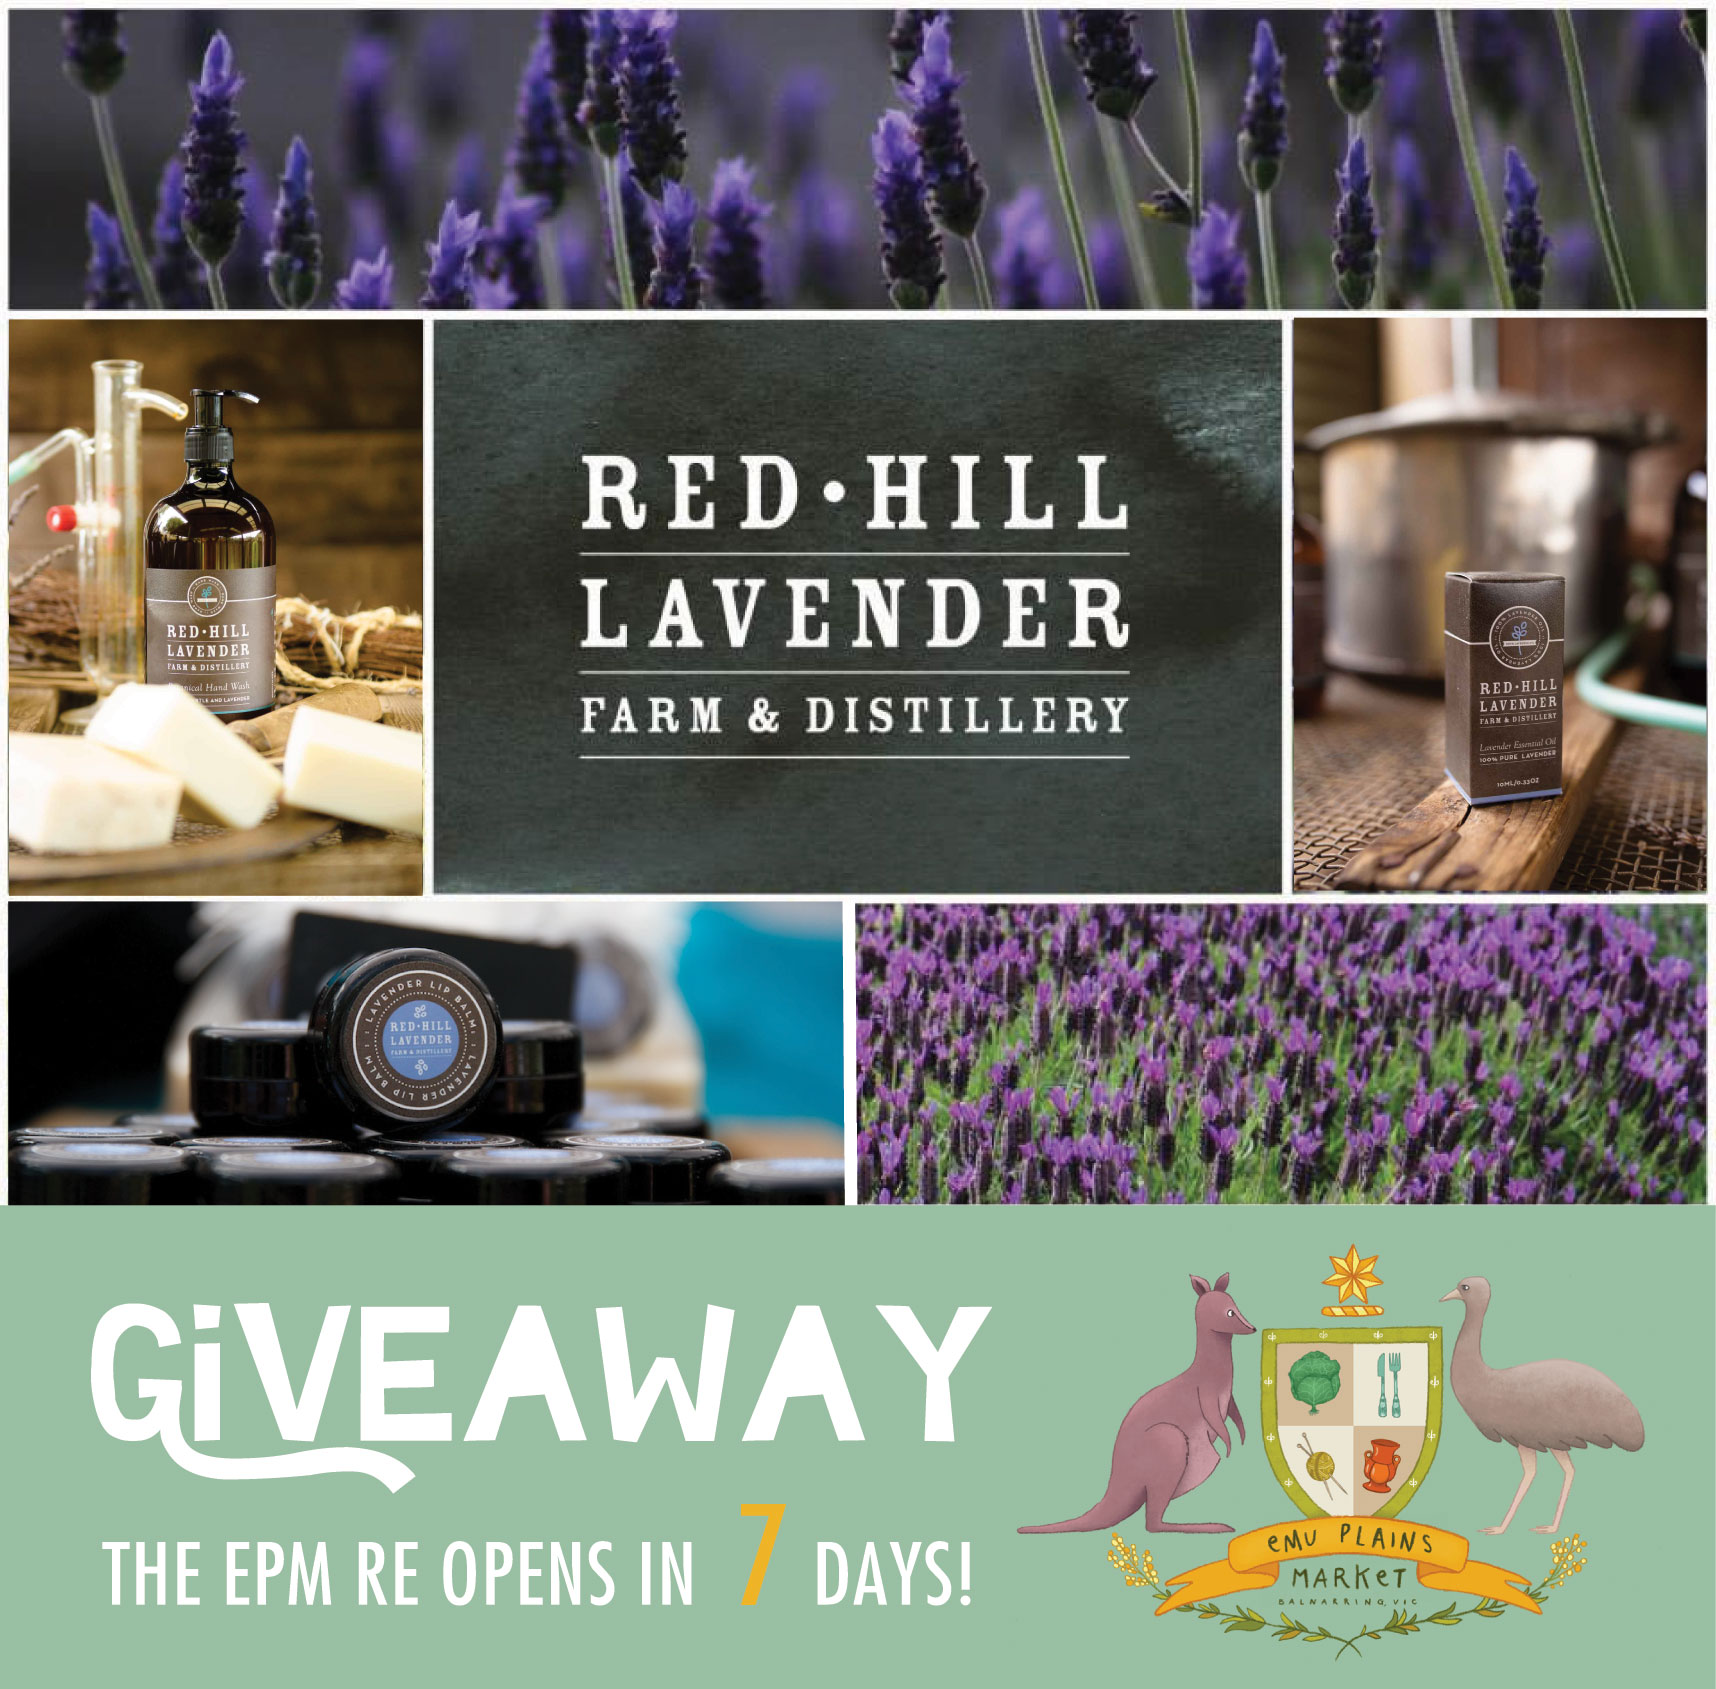 GIVEAWAY : RED HILL LAVENDER FARM & DISTILLERY